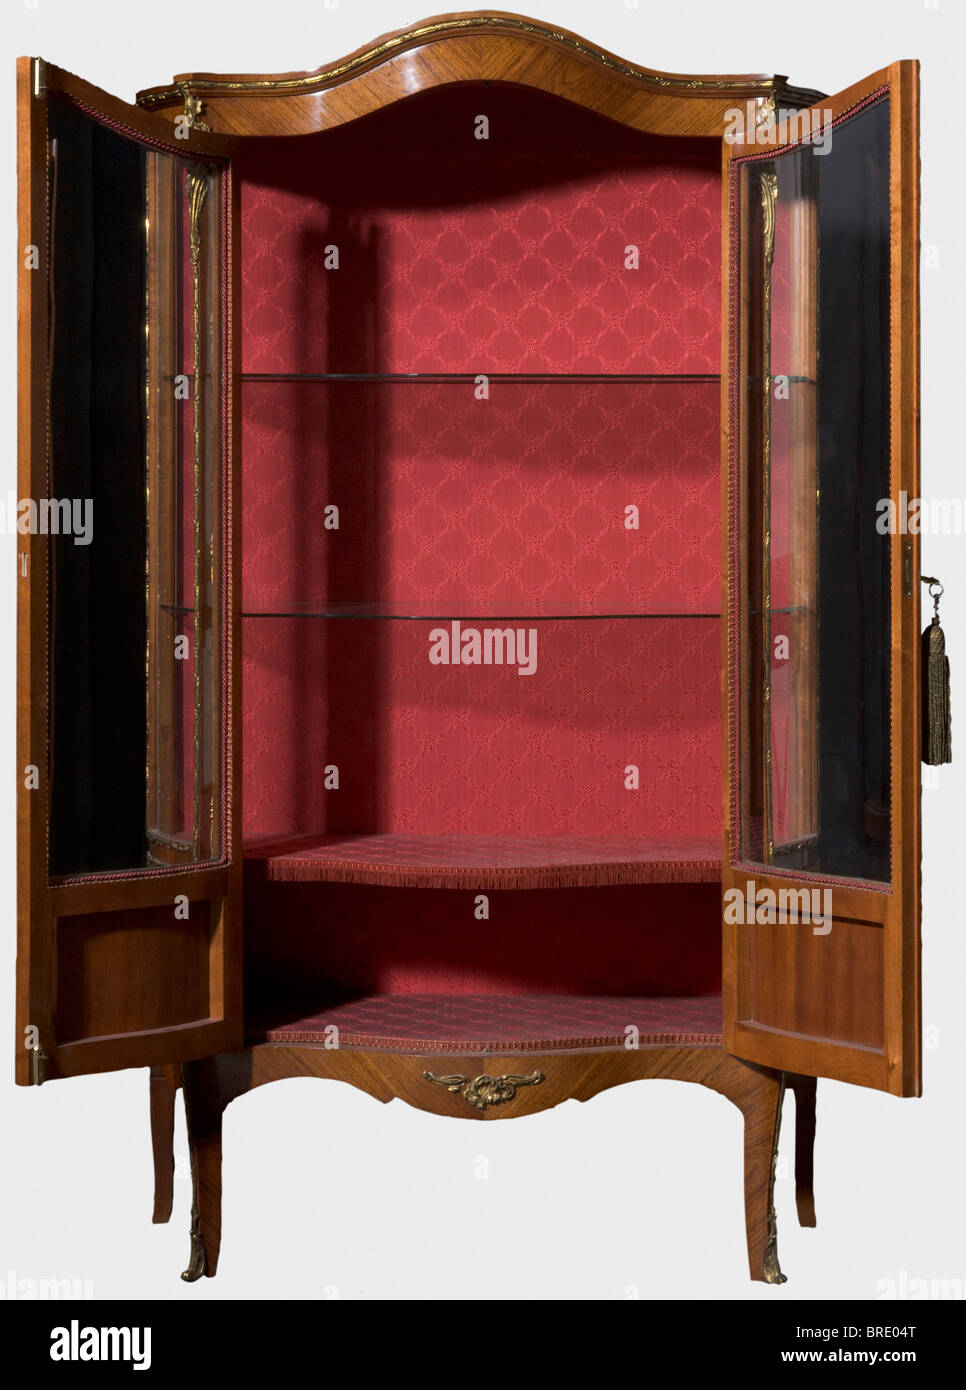 A serpentine display cabinet from the parlour décor, ascribed to the Gambs Workshop, Saint Petersburg, 1846. - Stock Image